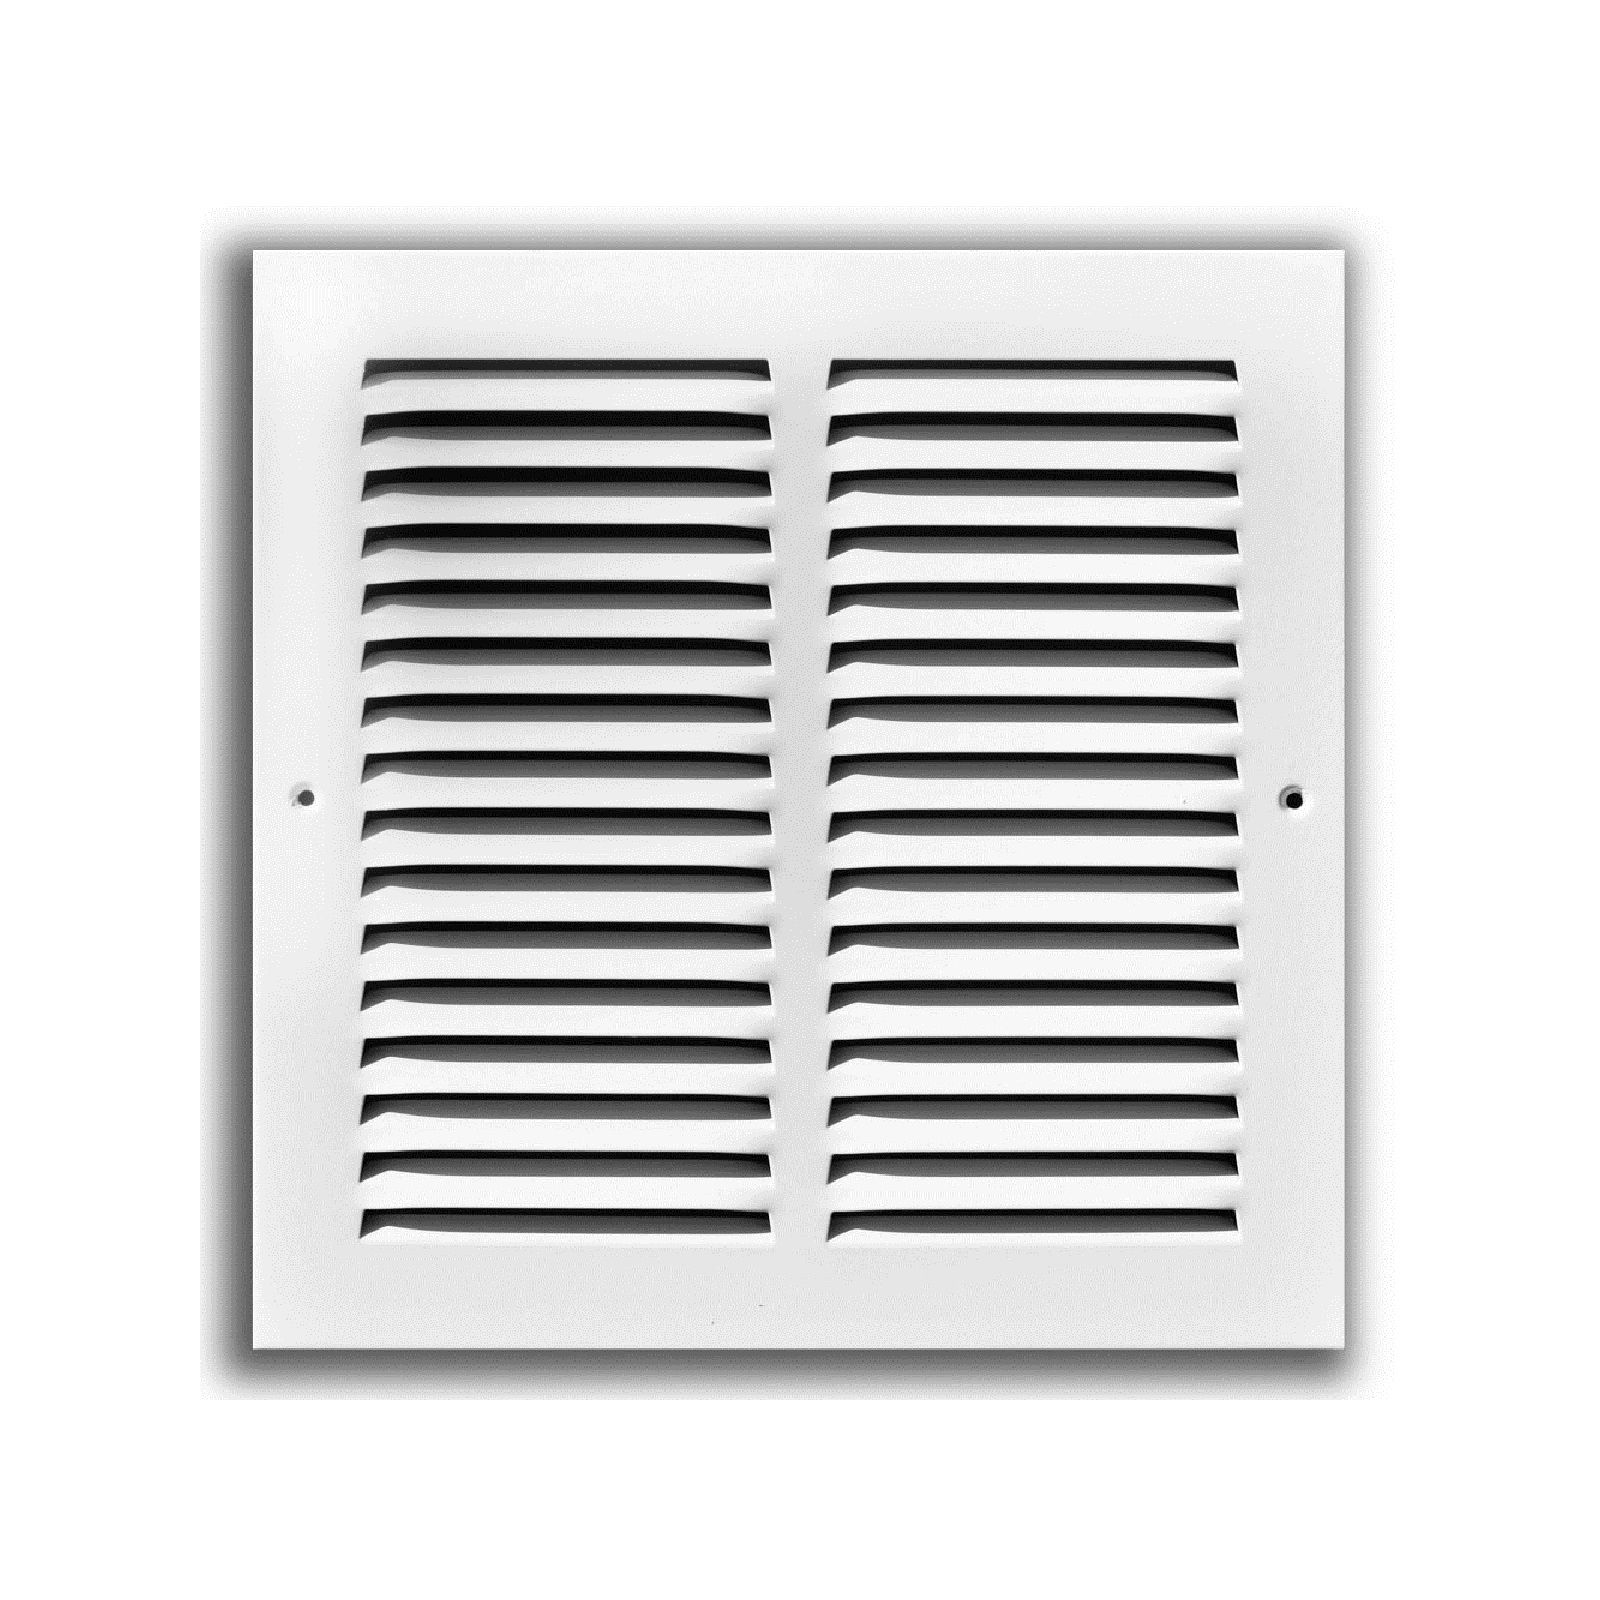 "TRUaire 170 10X04 - Steel Return Air Grille - 1/2"" Spaced Fin, White, 10"" X 04"""